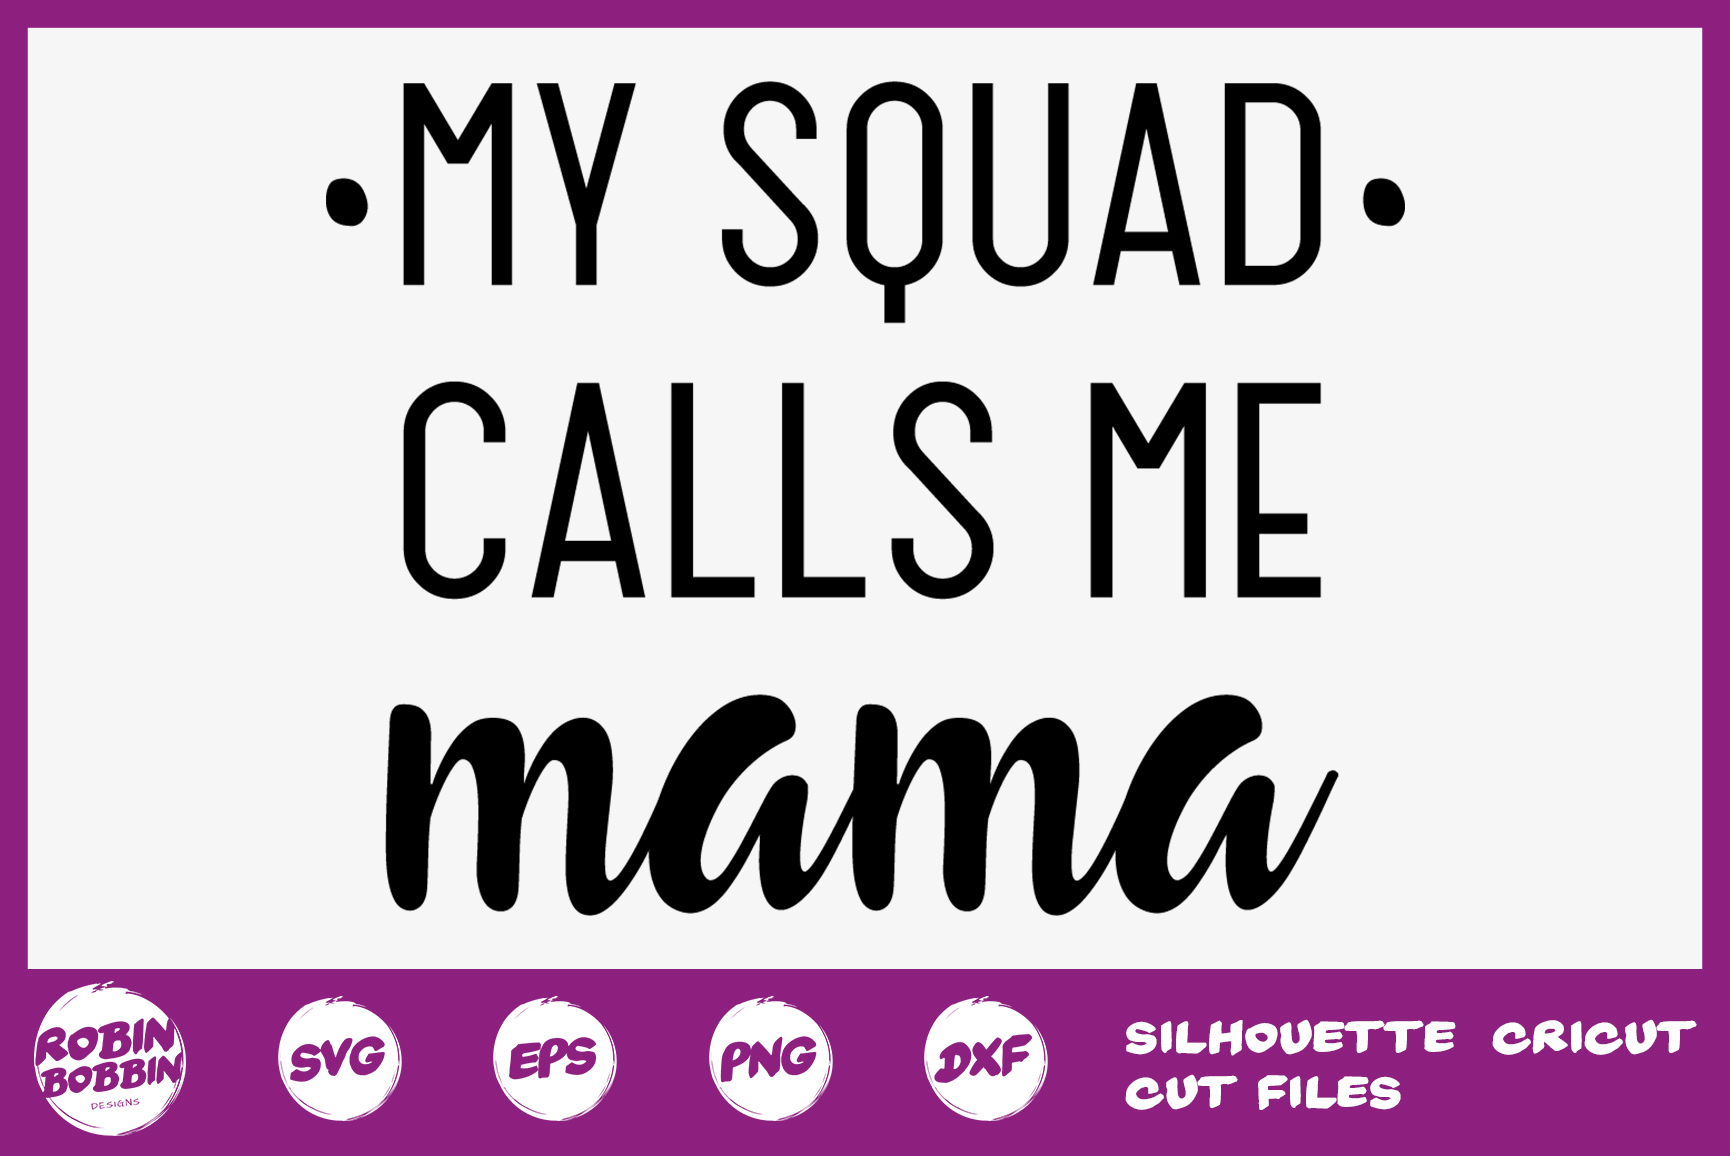 Download Free My Squad Calls Me Mama Graphic By Robinbobbindesign Creative for Cricut Explore, Silhouette and other cutting machines.